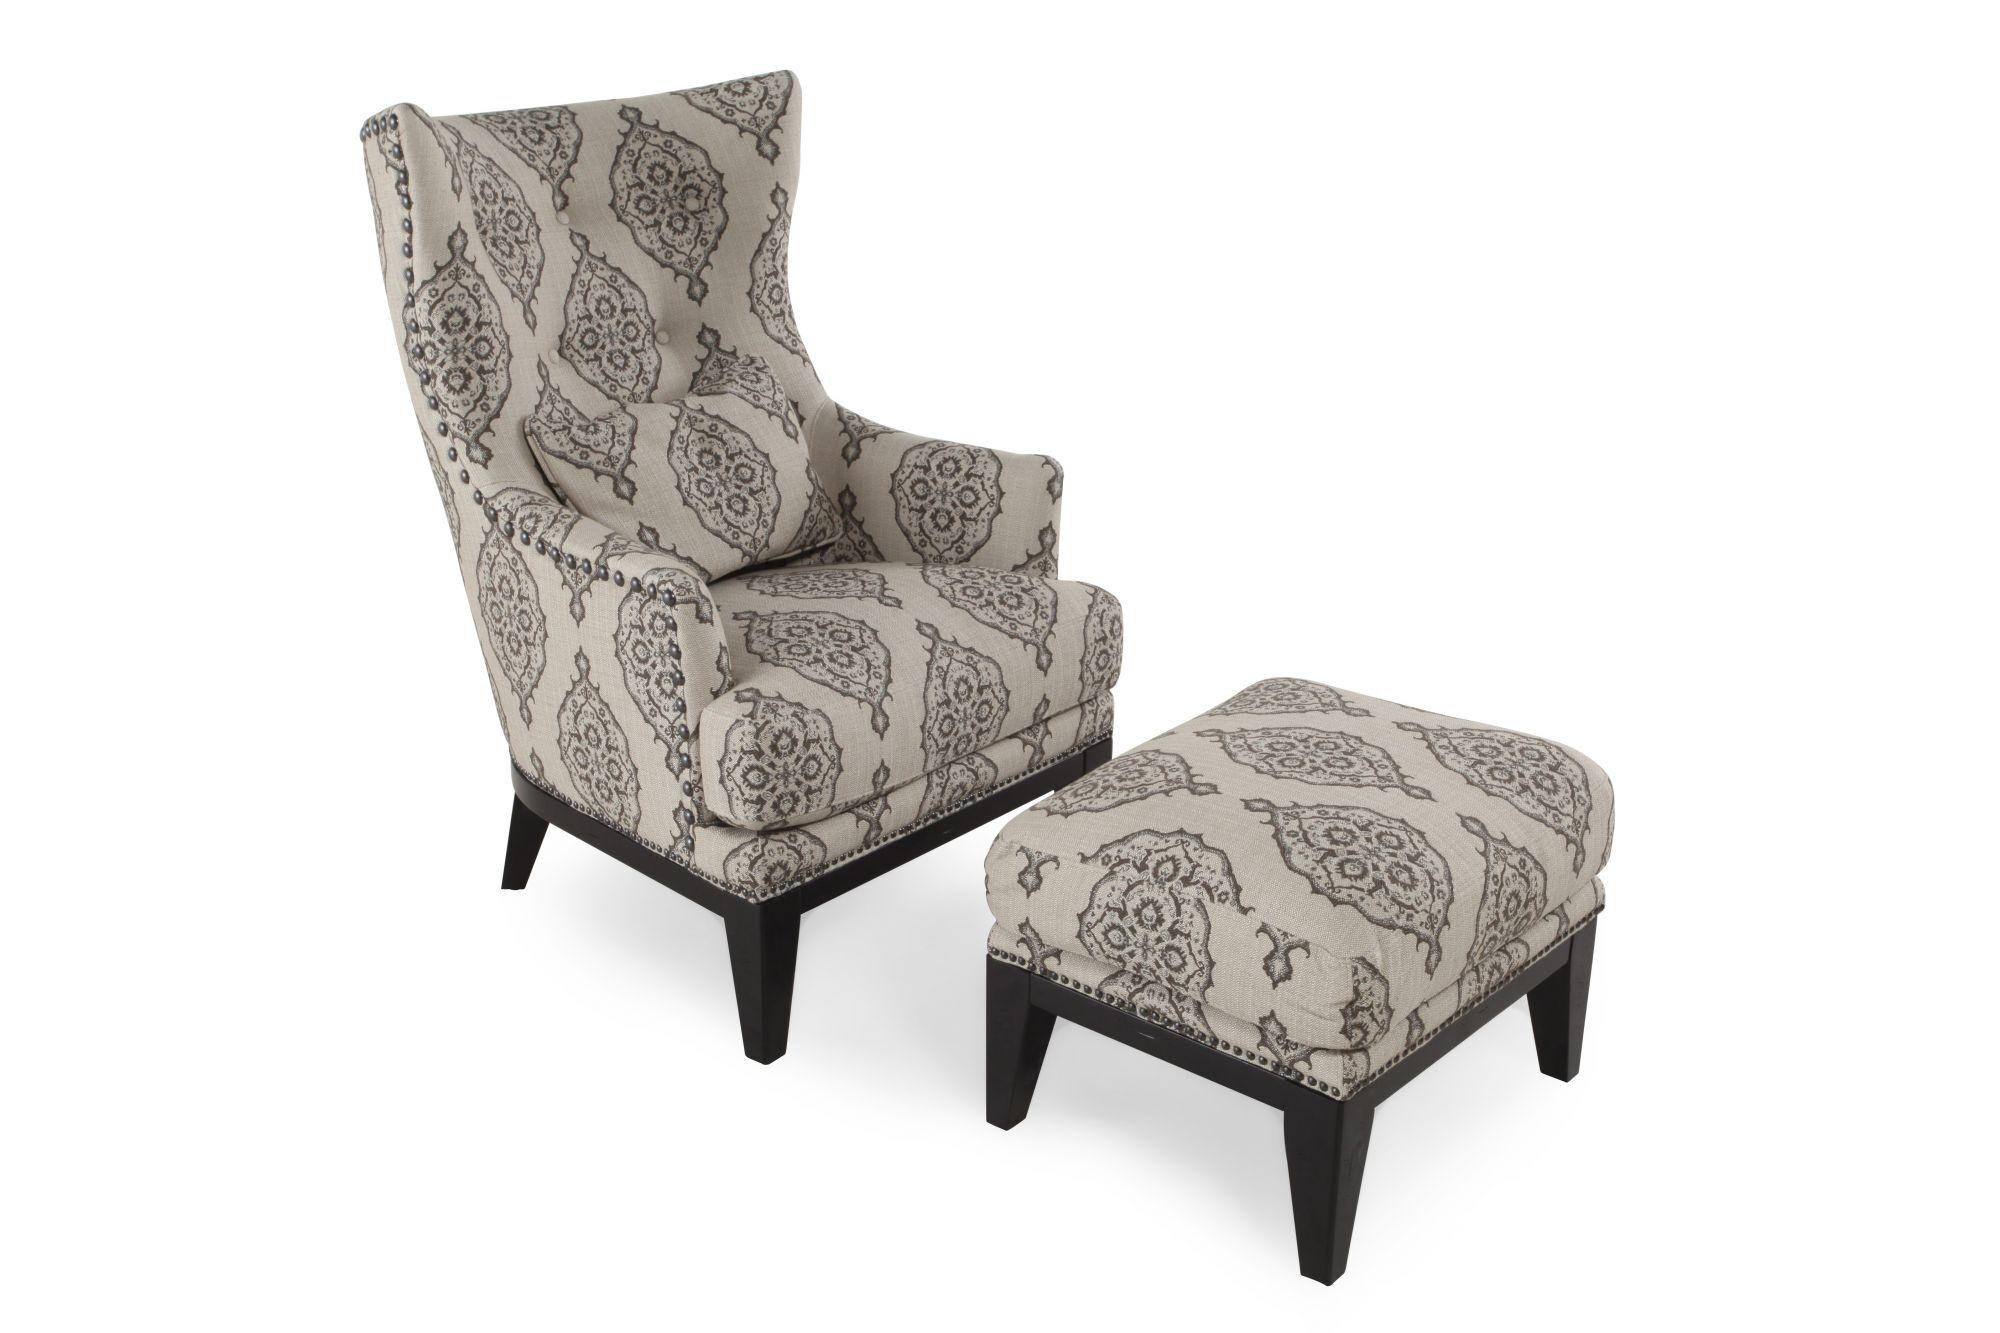 Patterned Chairs Patterned Contemporary Accent Chair And Ottoman Mathis